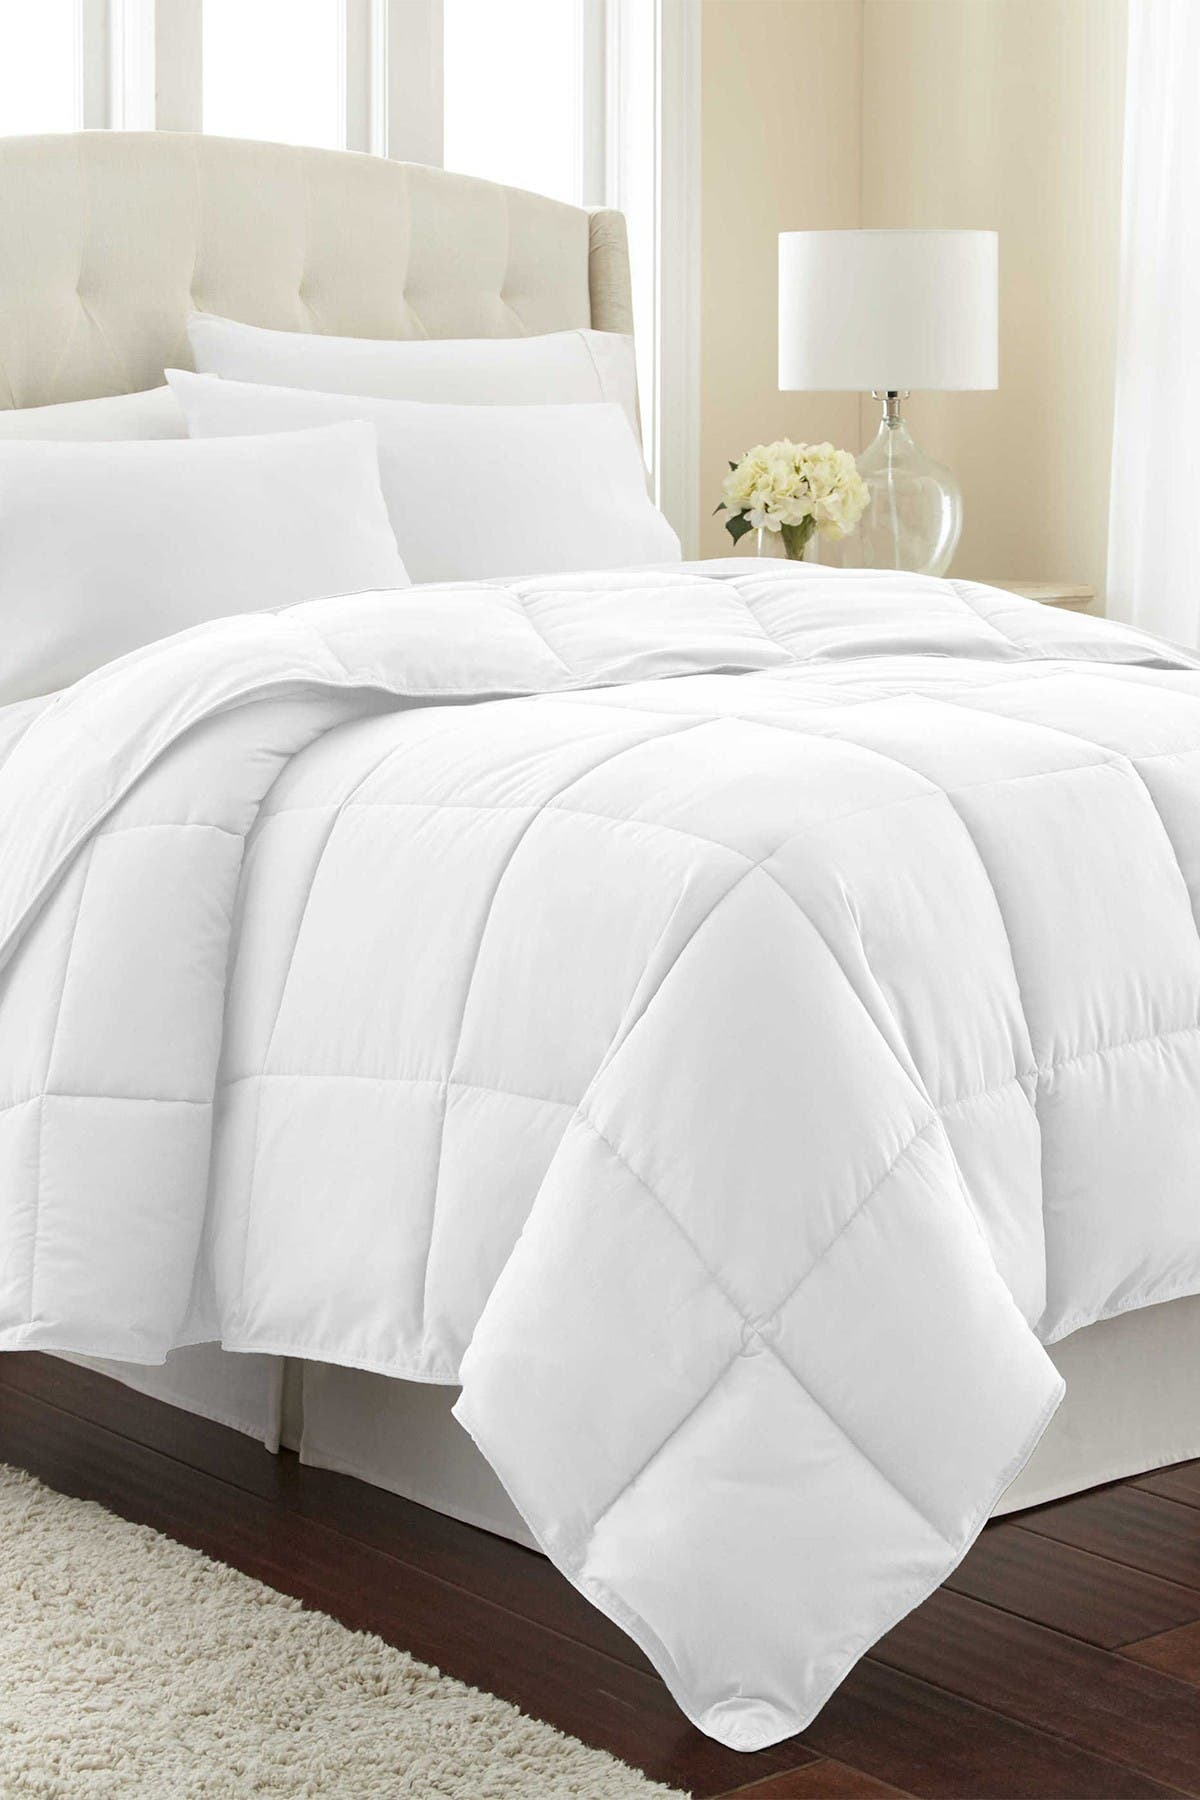 Image of SOUTHSHORE FINE LINENS King/California King Southshore Fine Linens Vilano Springs  Down Alternate Weight Comforter - Bright White